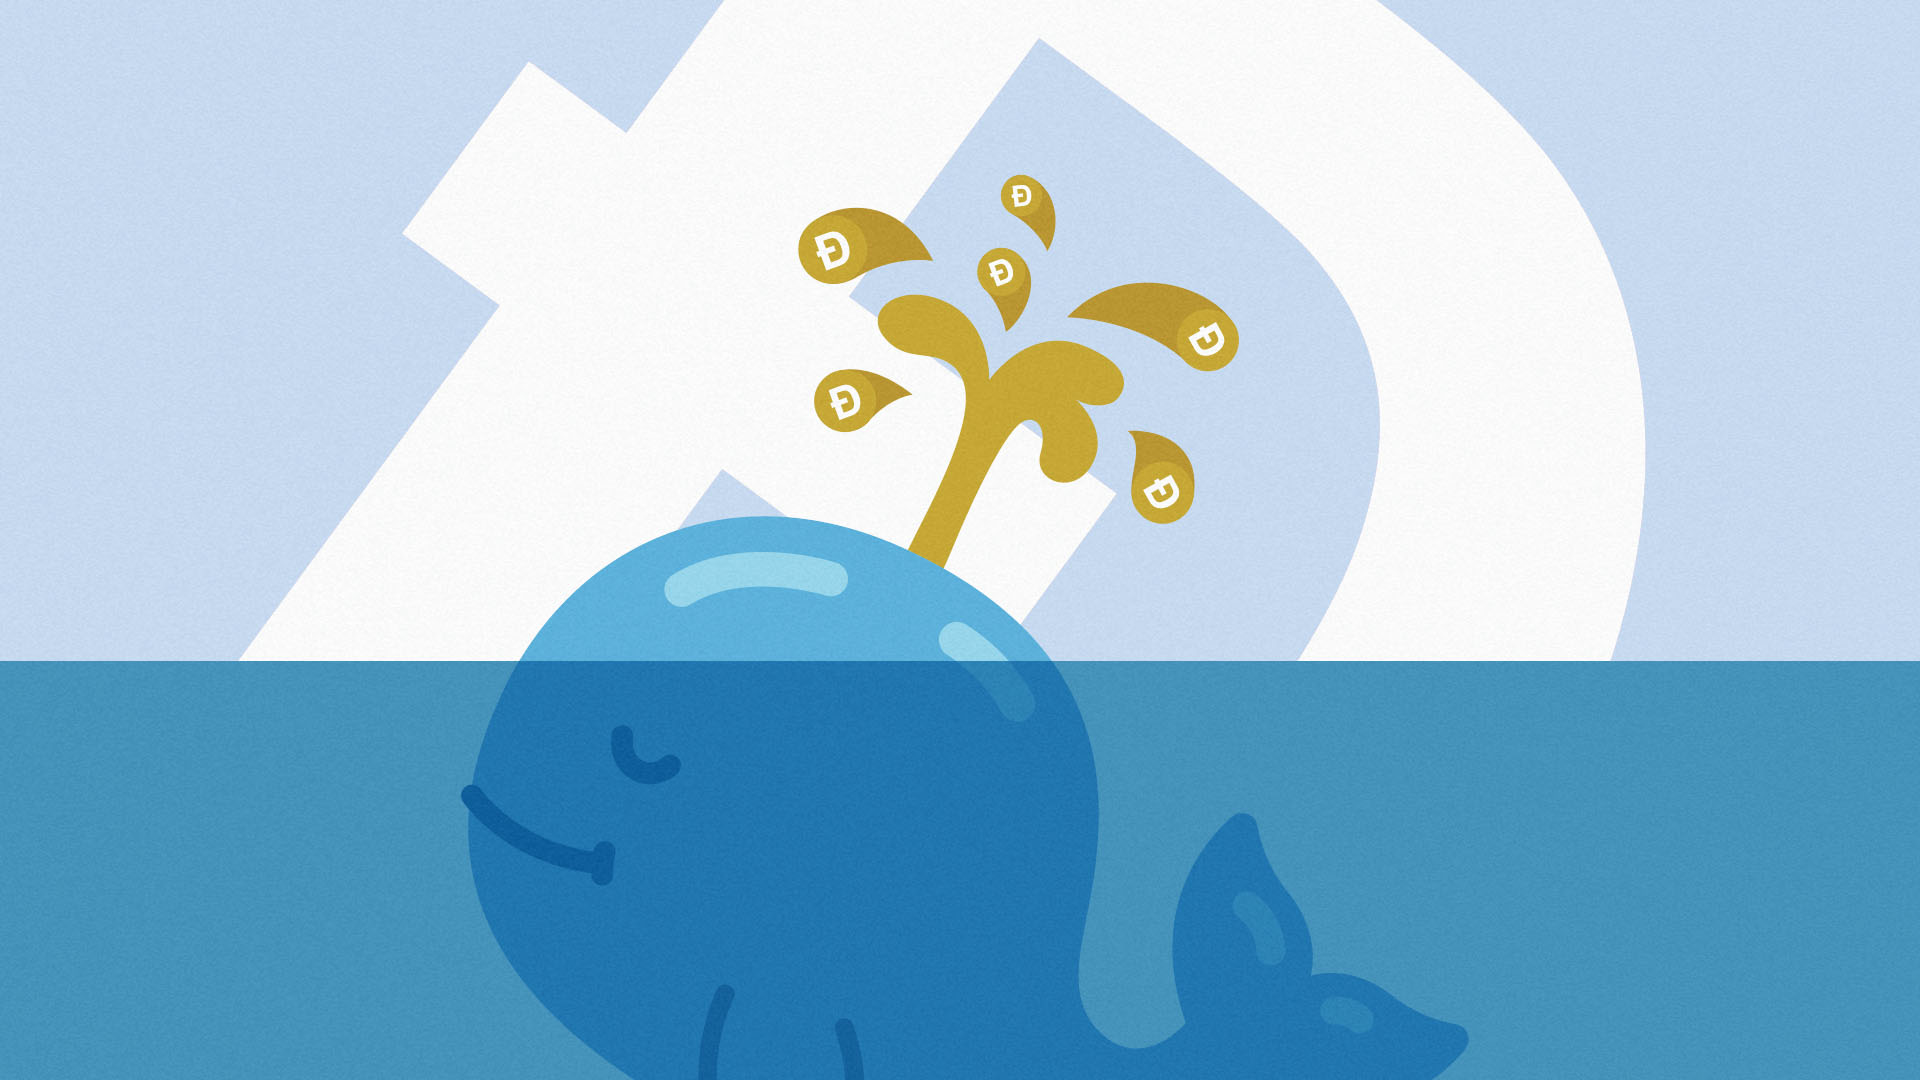 This is a Dogecoin whale happily squirting DOGE all over the world.